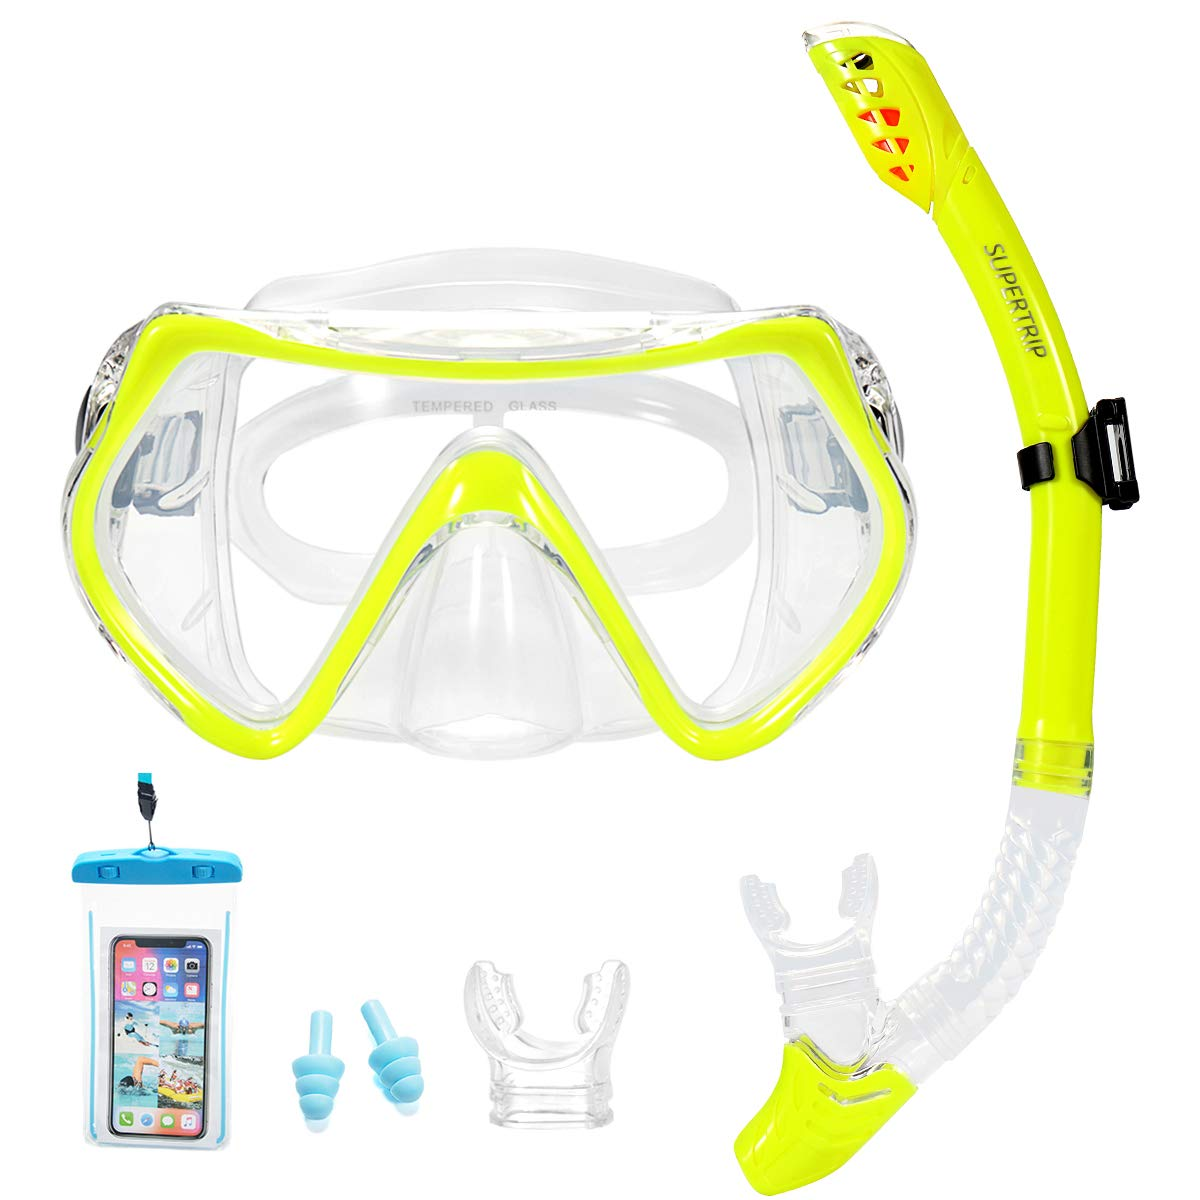 Supertrip Snorkel Set Adults-Scuba Snorkeling Diving Mask with Impact Resistant Anti-Fog Temperred Glass|Dry Top Snorkel,2 Mouthpieces 1 Waterproof Case Included Yellow by Supertrip